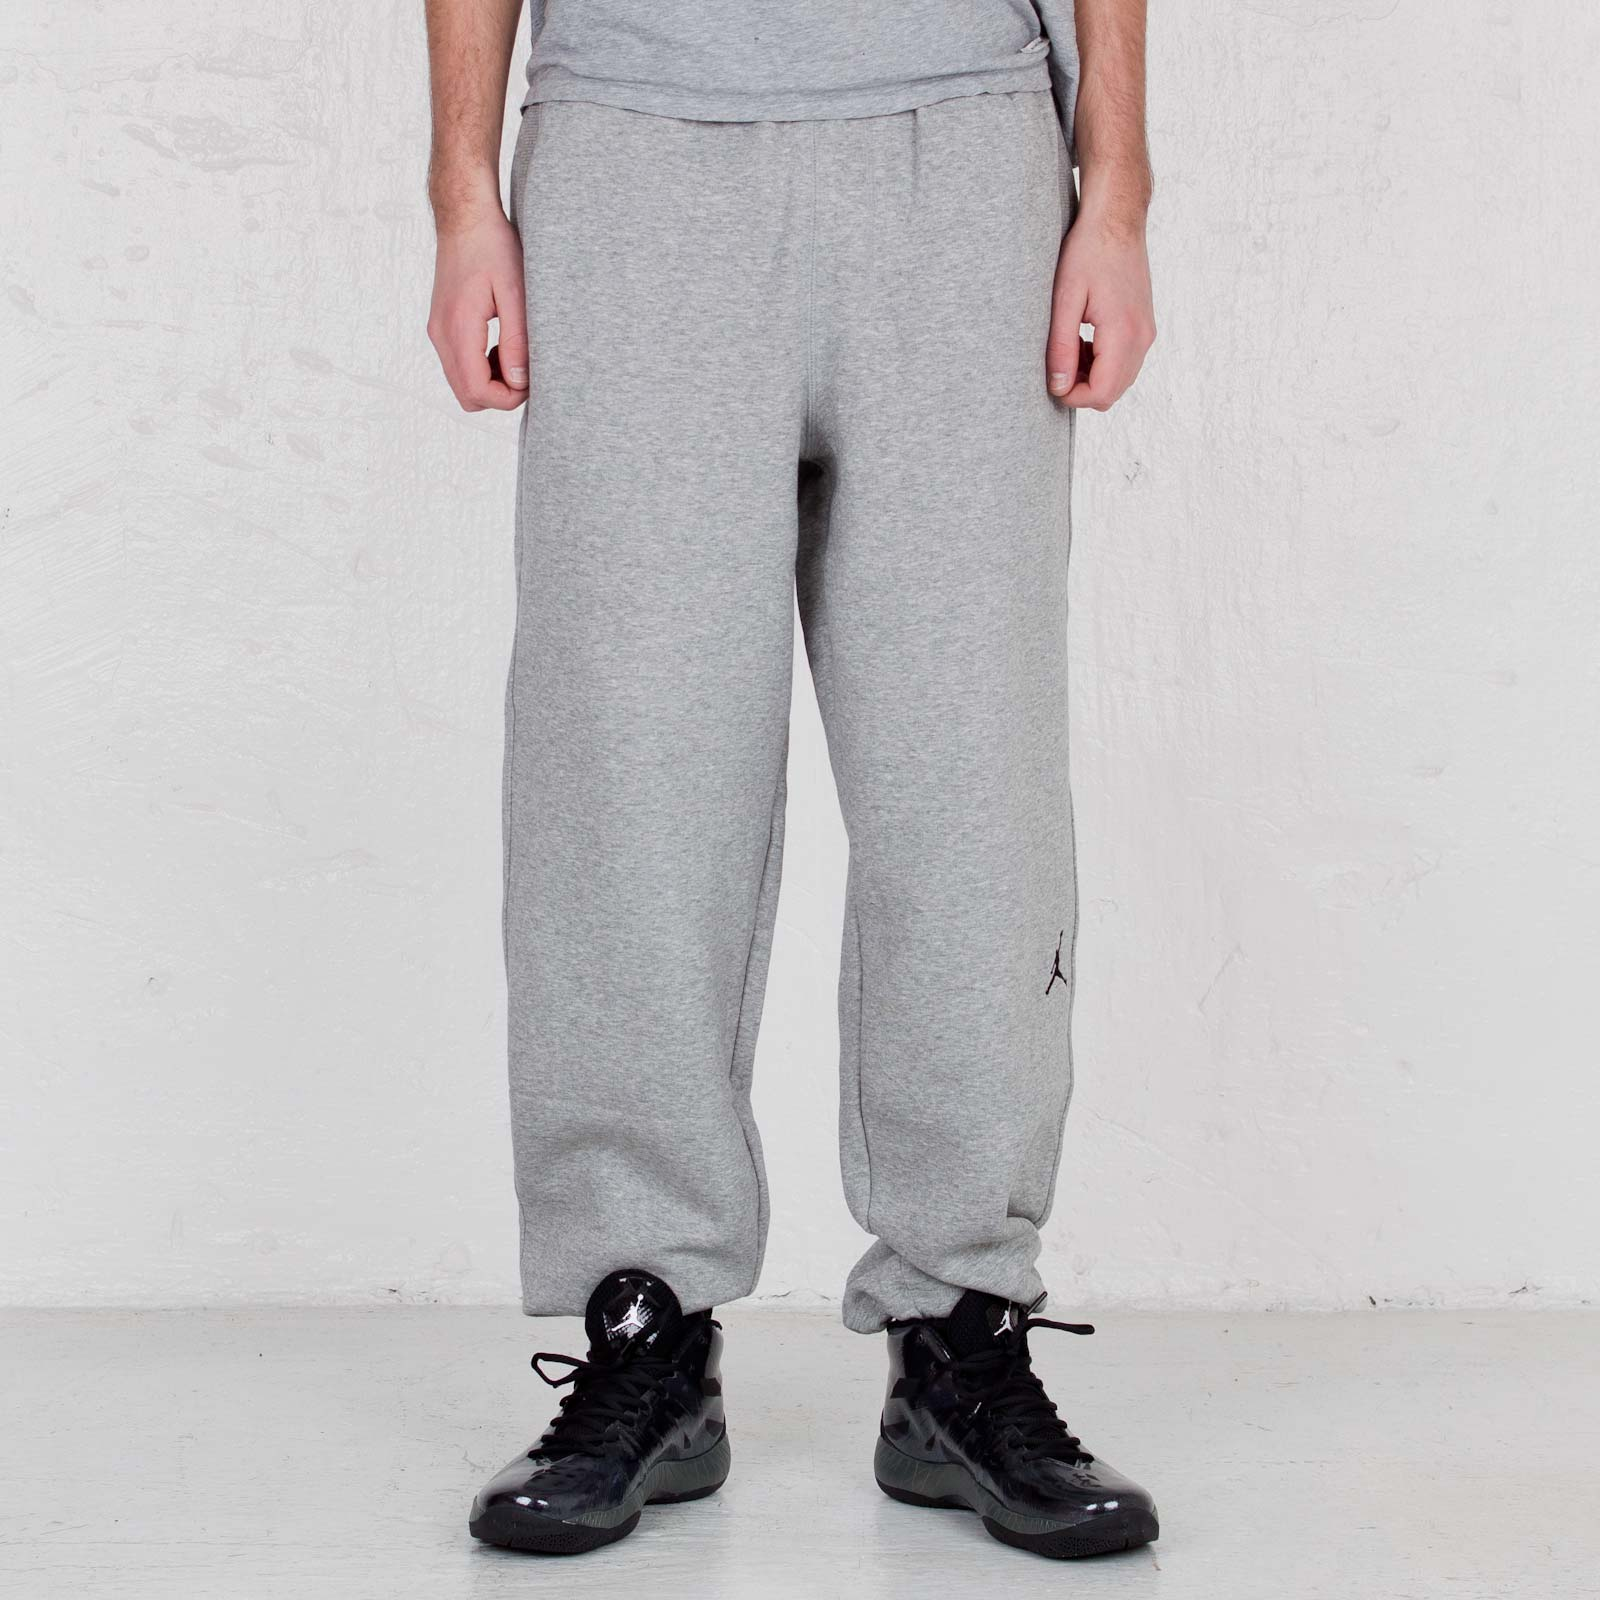 size 40 f1d20 a9140 Jordan Brand All Day Everyday Pant